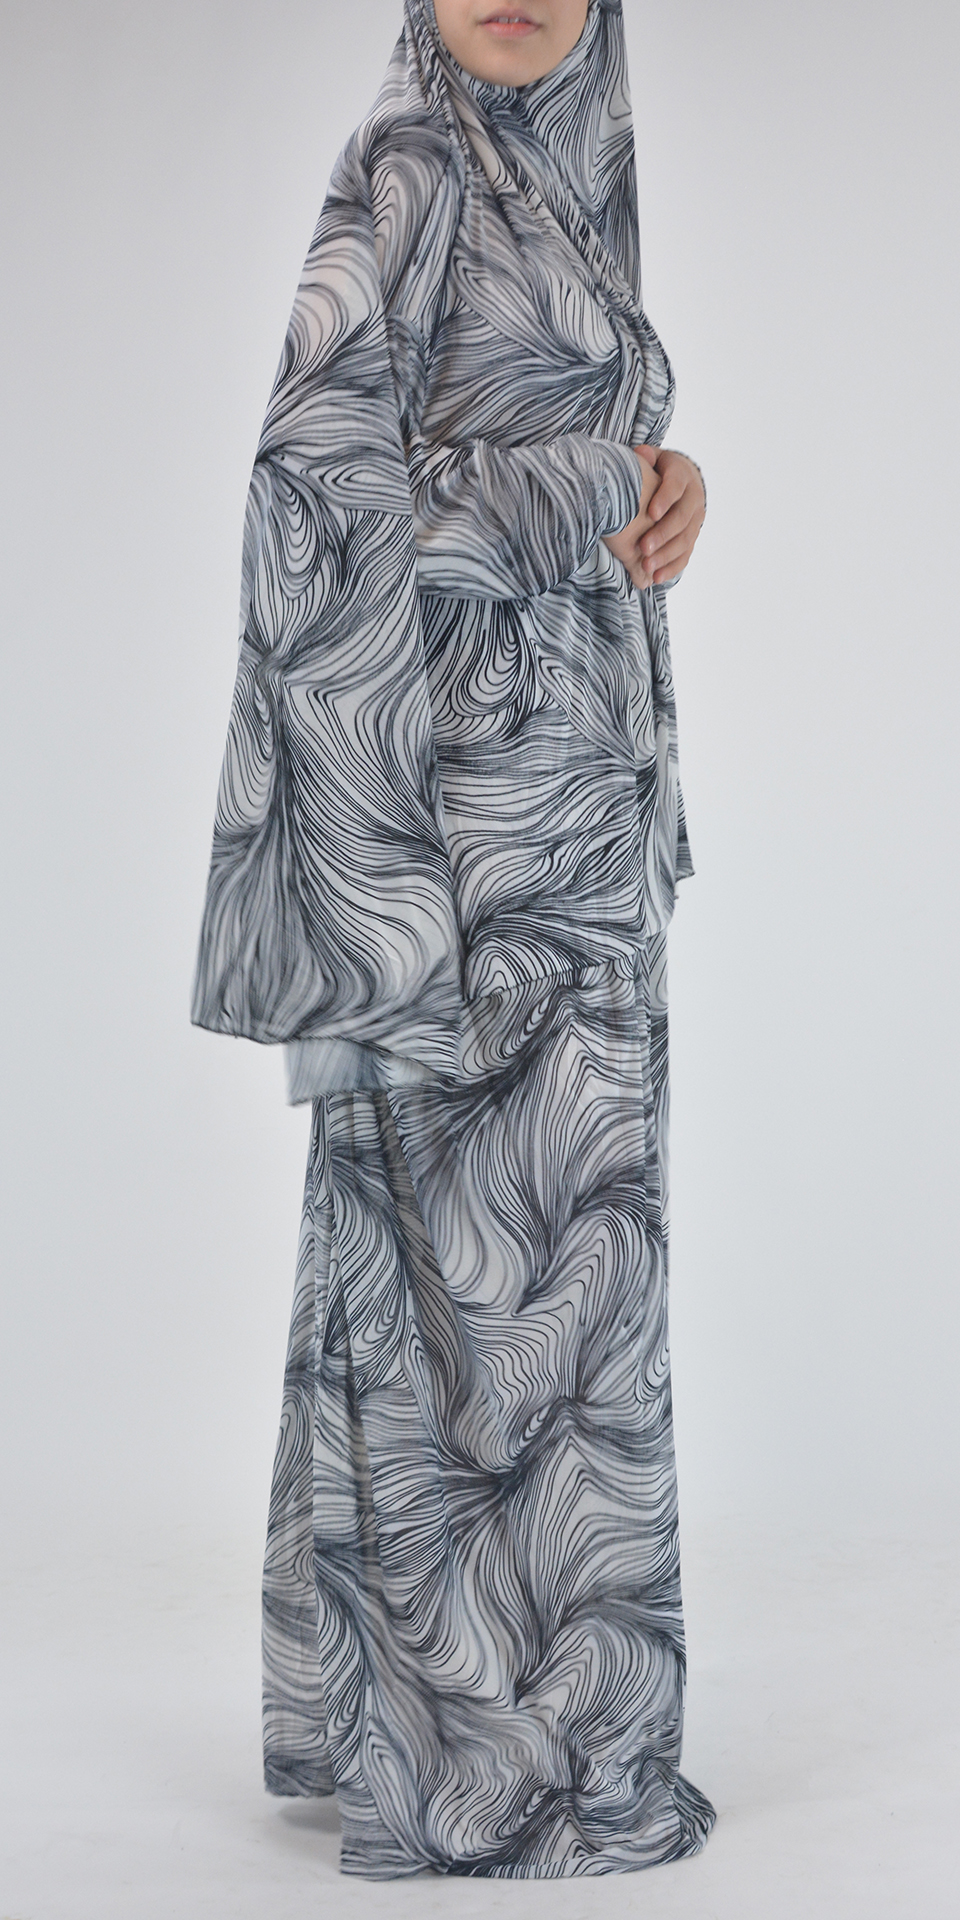 Abstract Black and White Swirls Print - Two Piece Prayer Outfit PS427 2